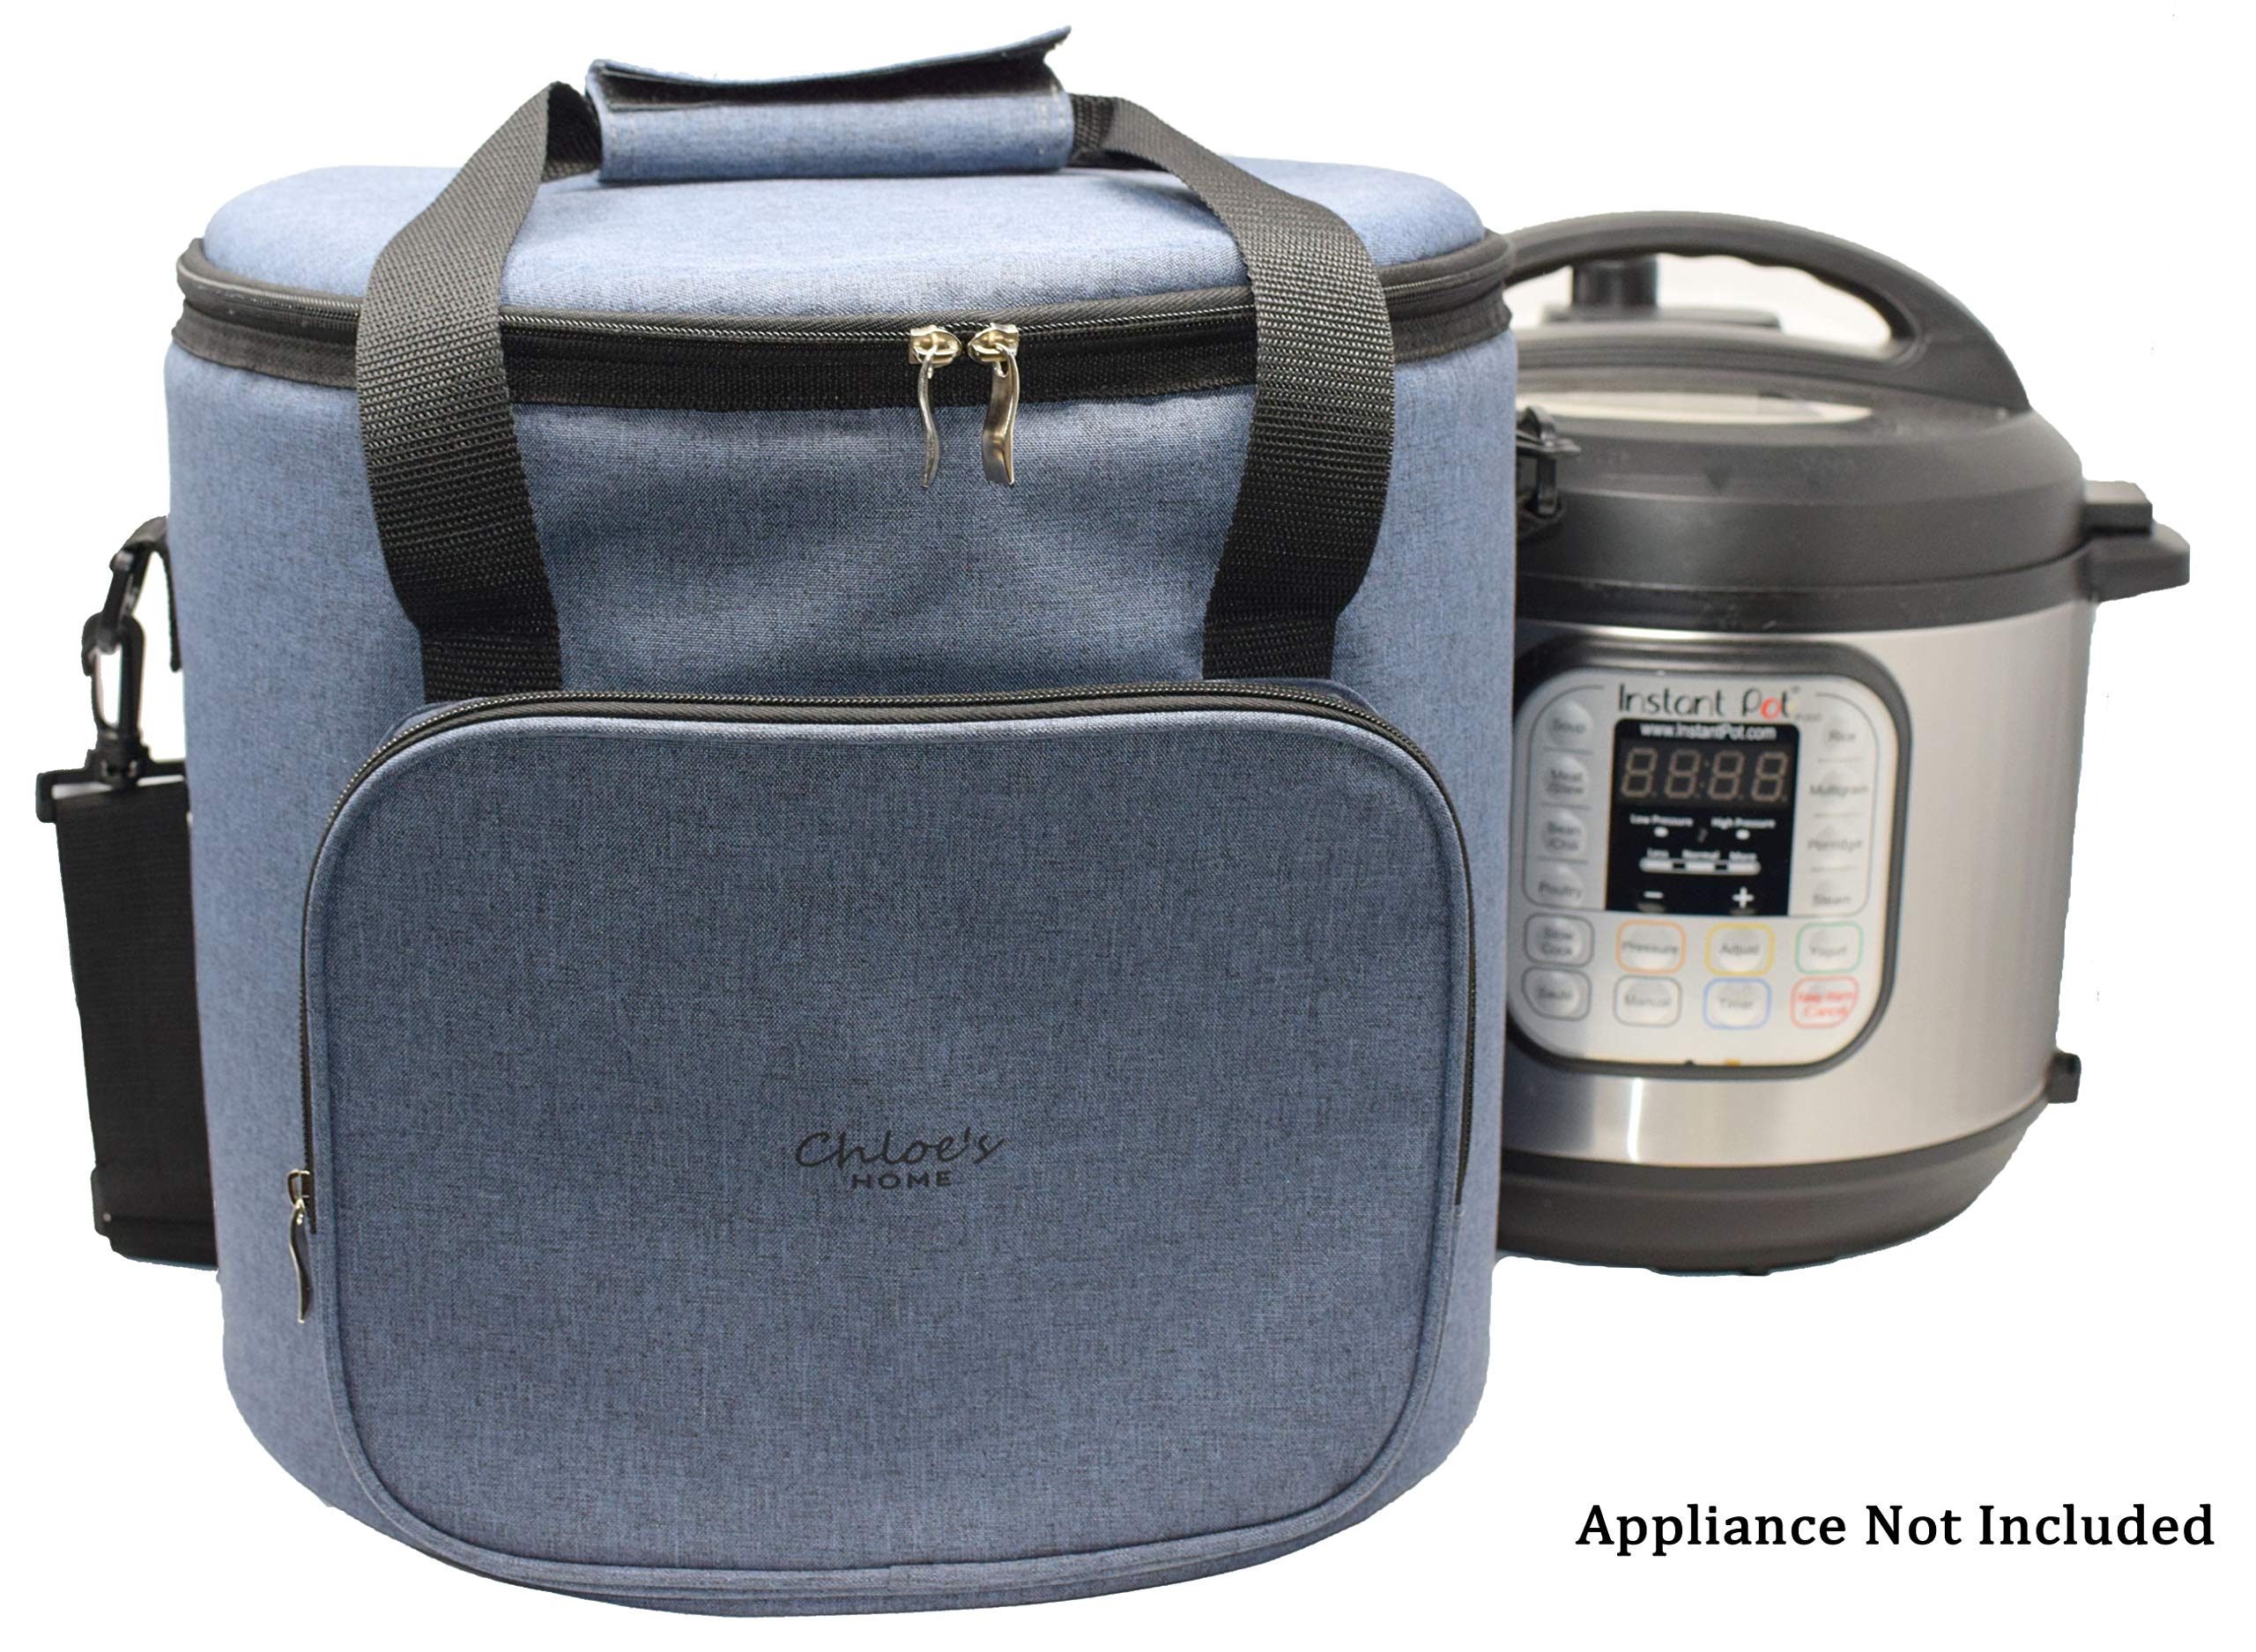 Chloe's Home Travel Bag for Instant Pot (8QT Anthracite Gray) – Versatile Tote Bag For Small Appliances & More With Carrying Strap, Handles & External Zip Pocket- Instant Pot Accessories For Traveling